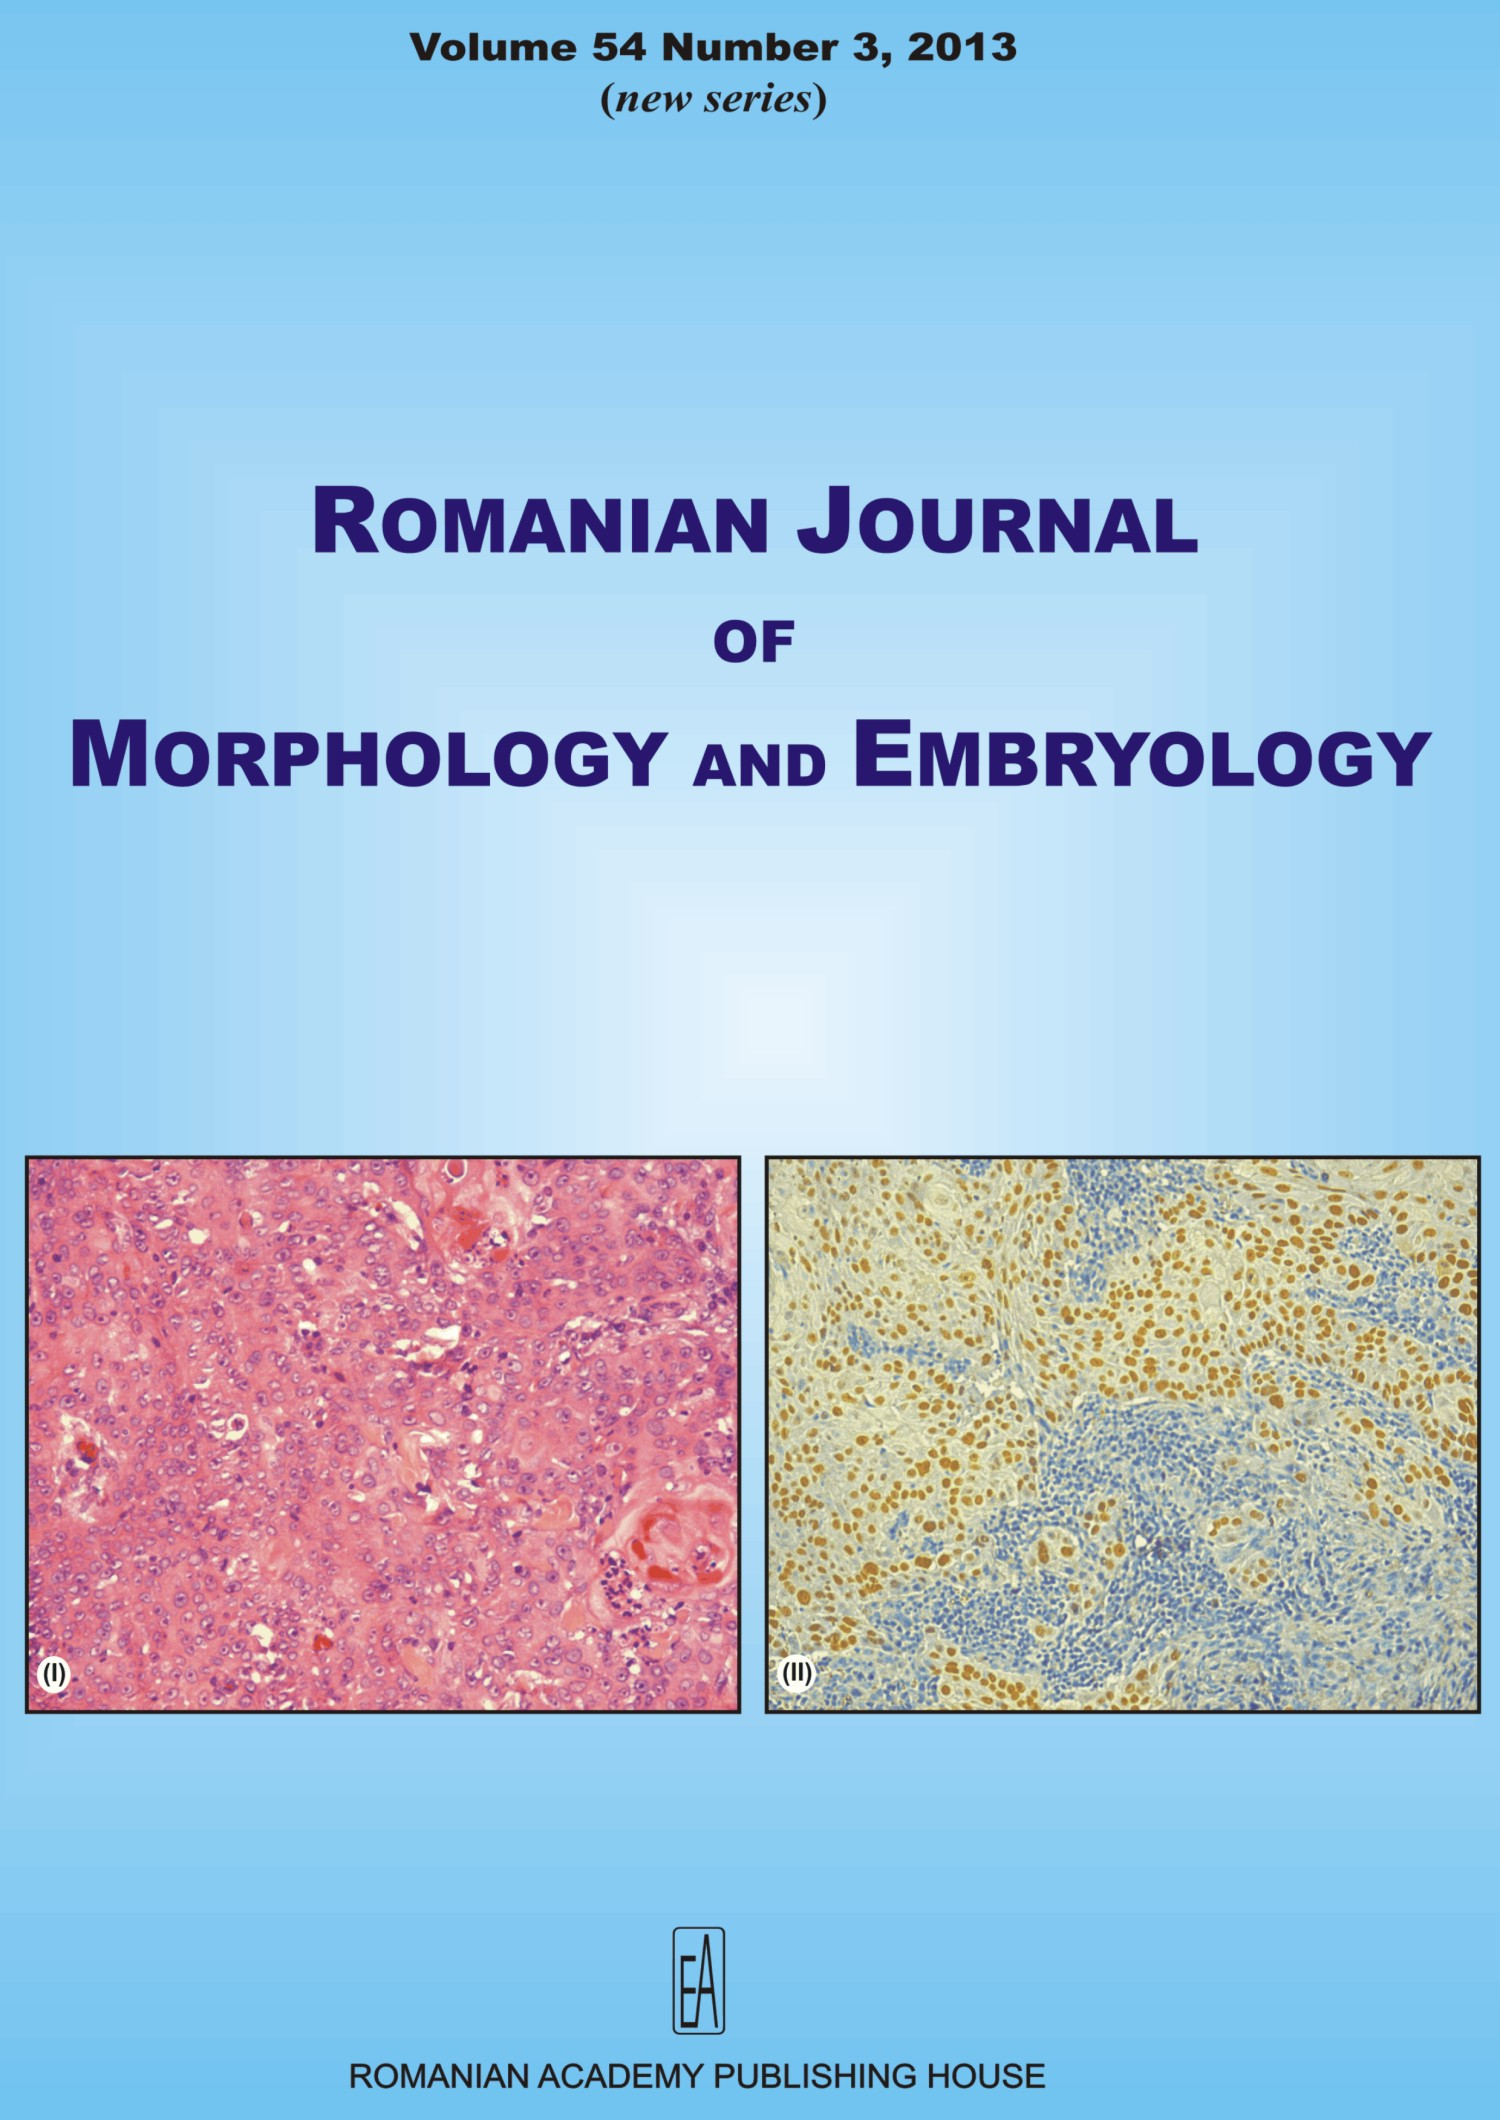 Romanian Journal of Morphology and Embryology, vol. 54 no. 3, 2013